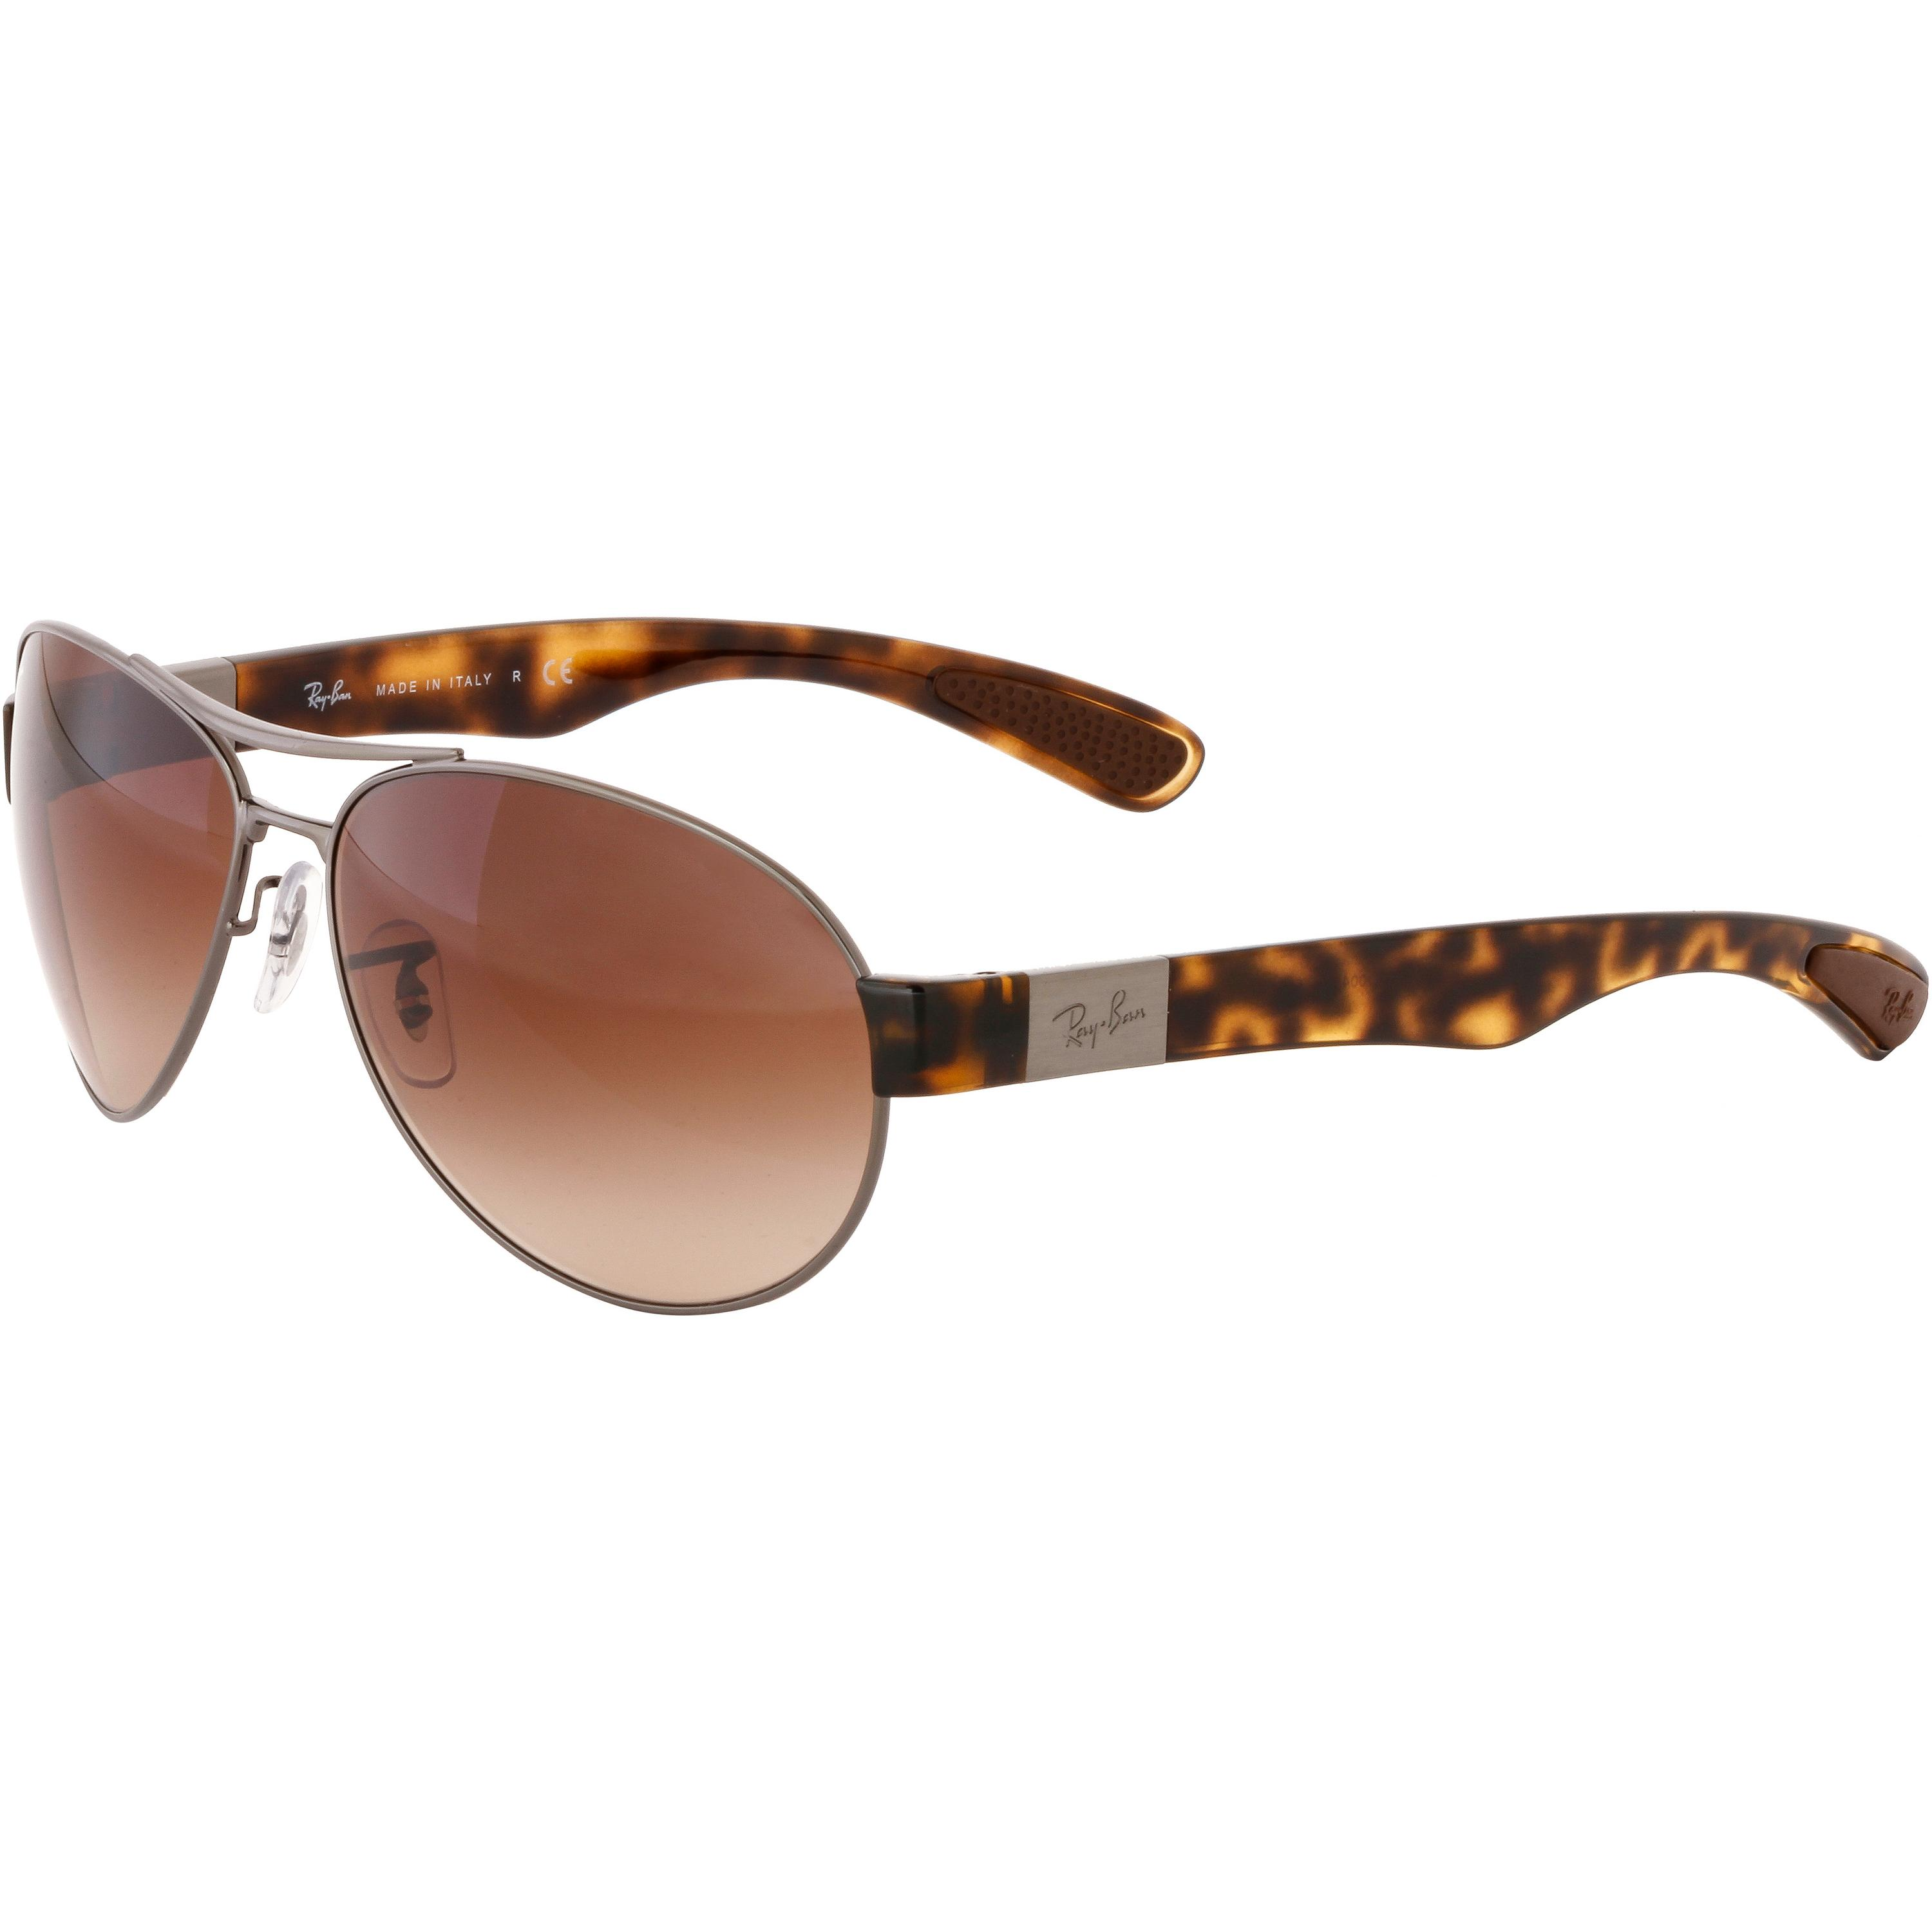 RAY-BAN 0RB3509 004/13 63 Sonnenbrille